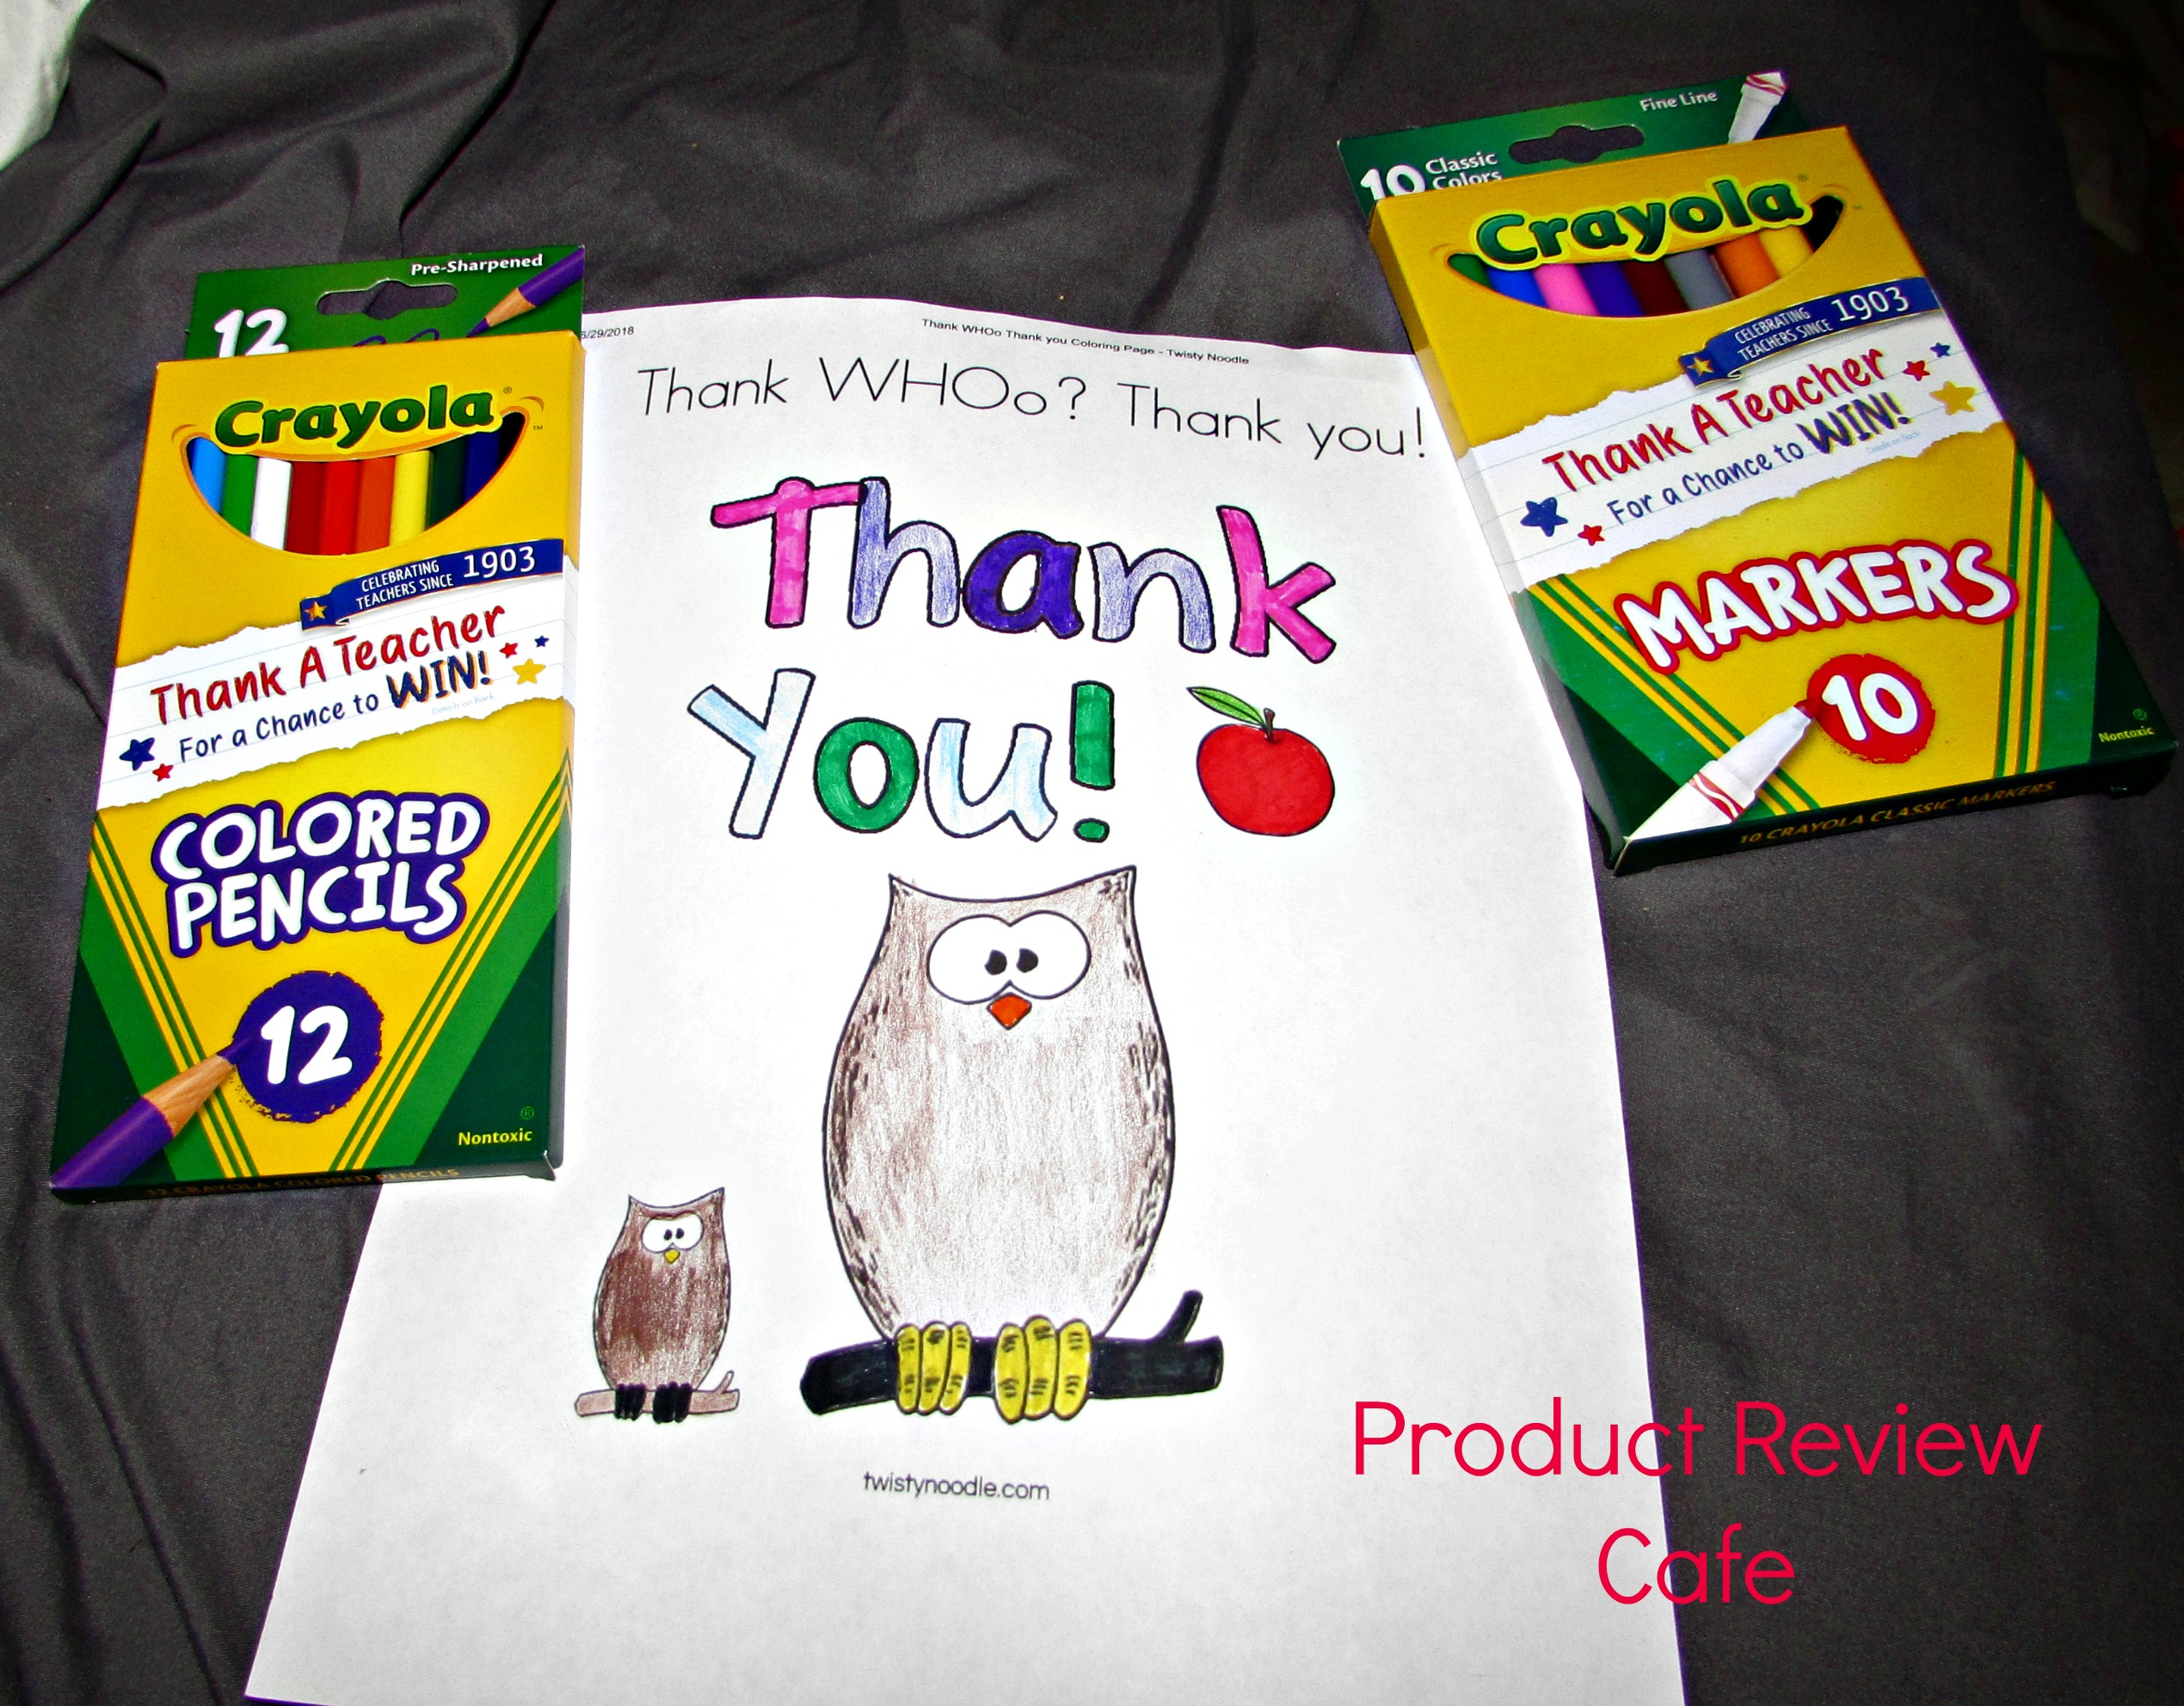 Crayola Helps us Thank a Teacher + Contest Info